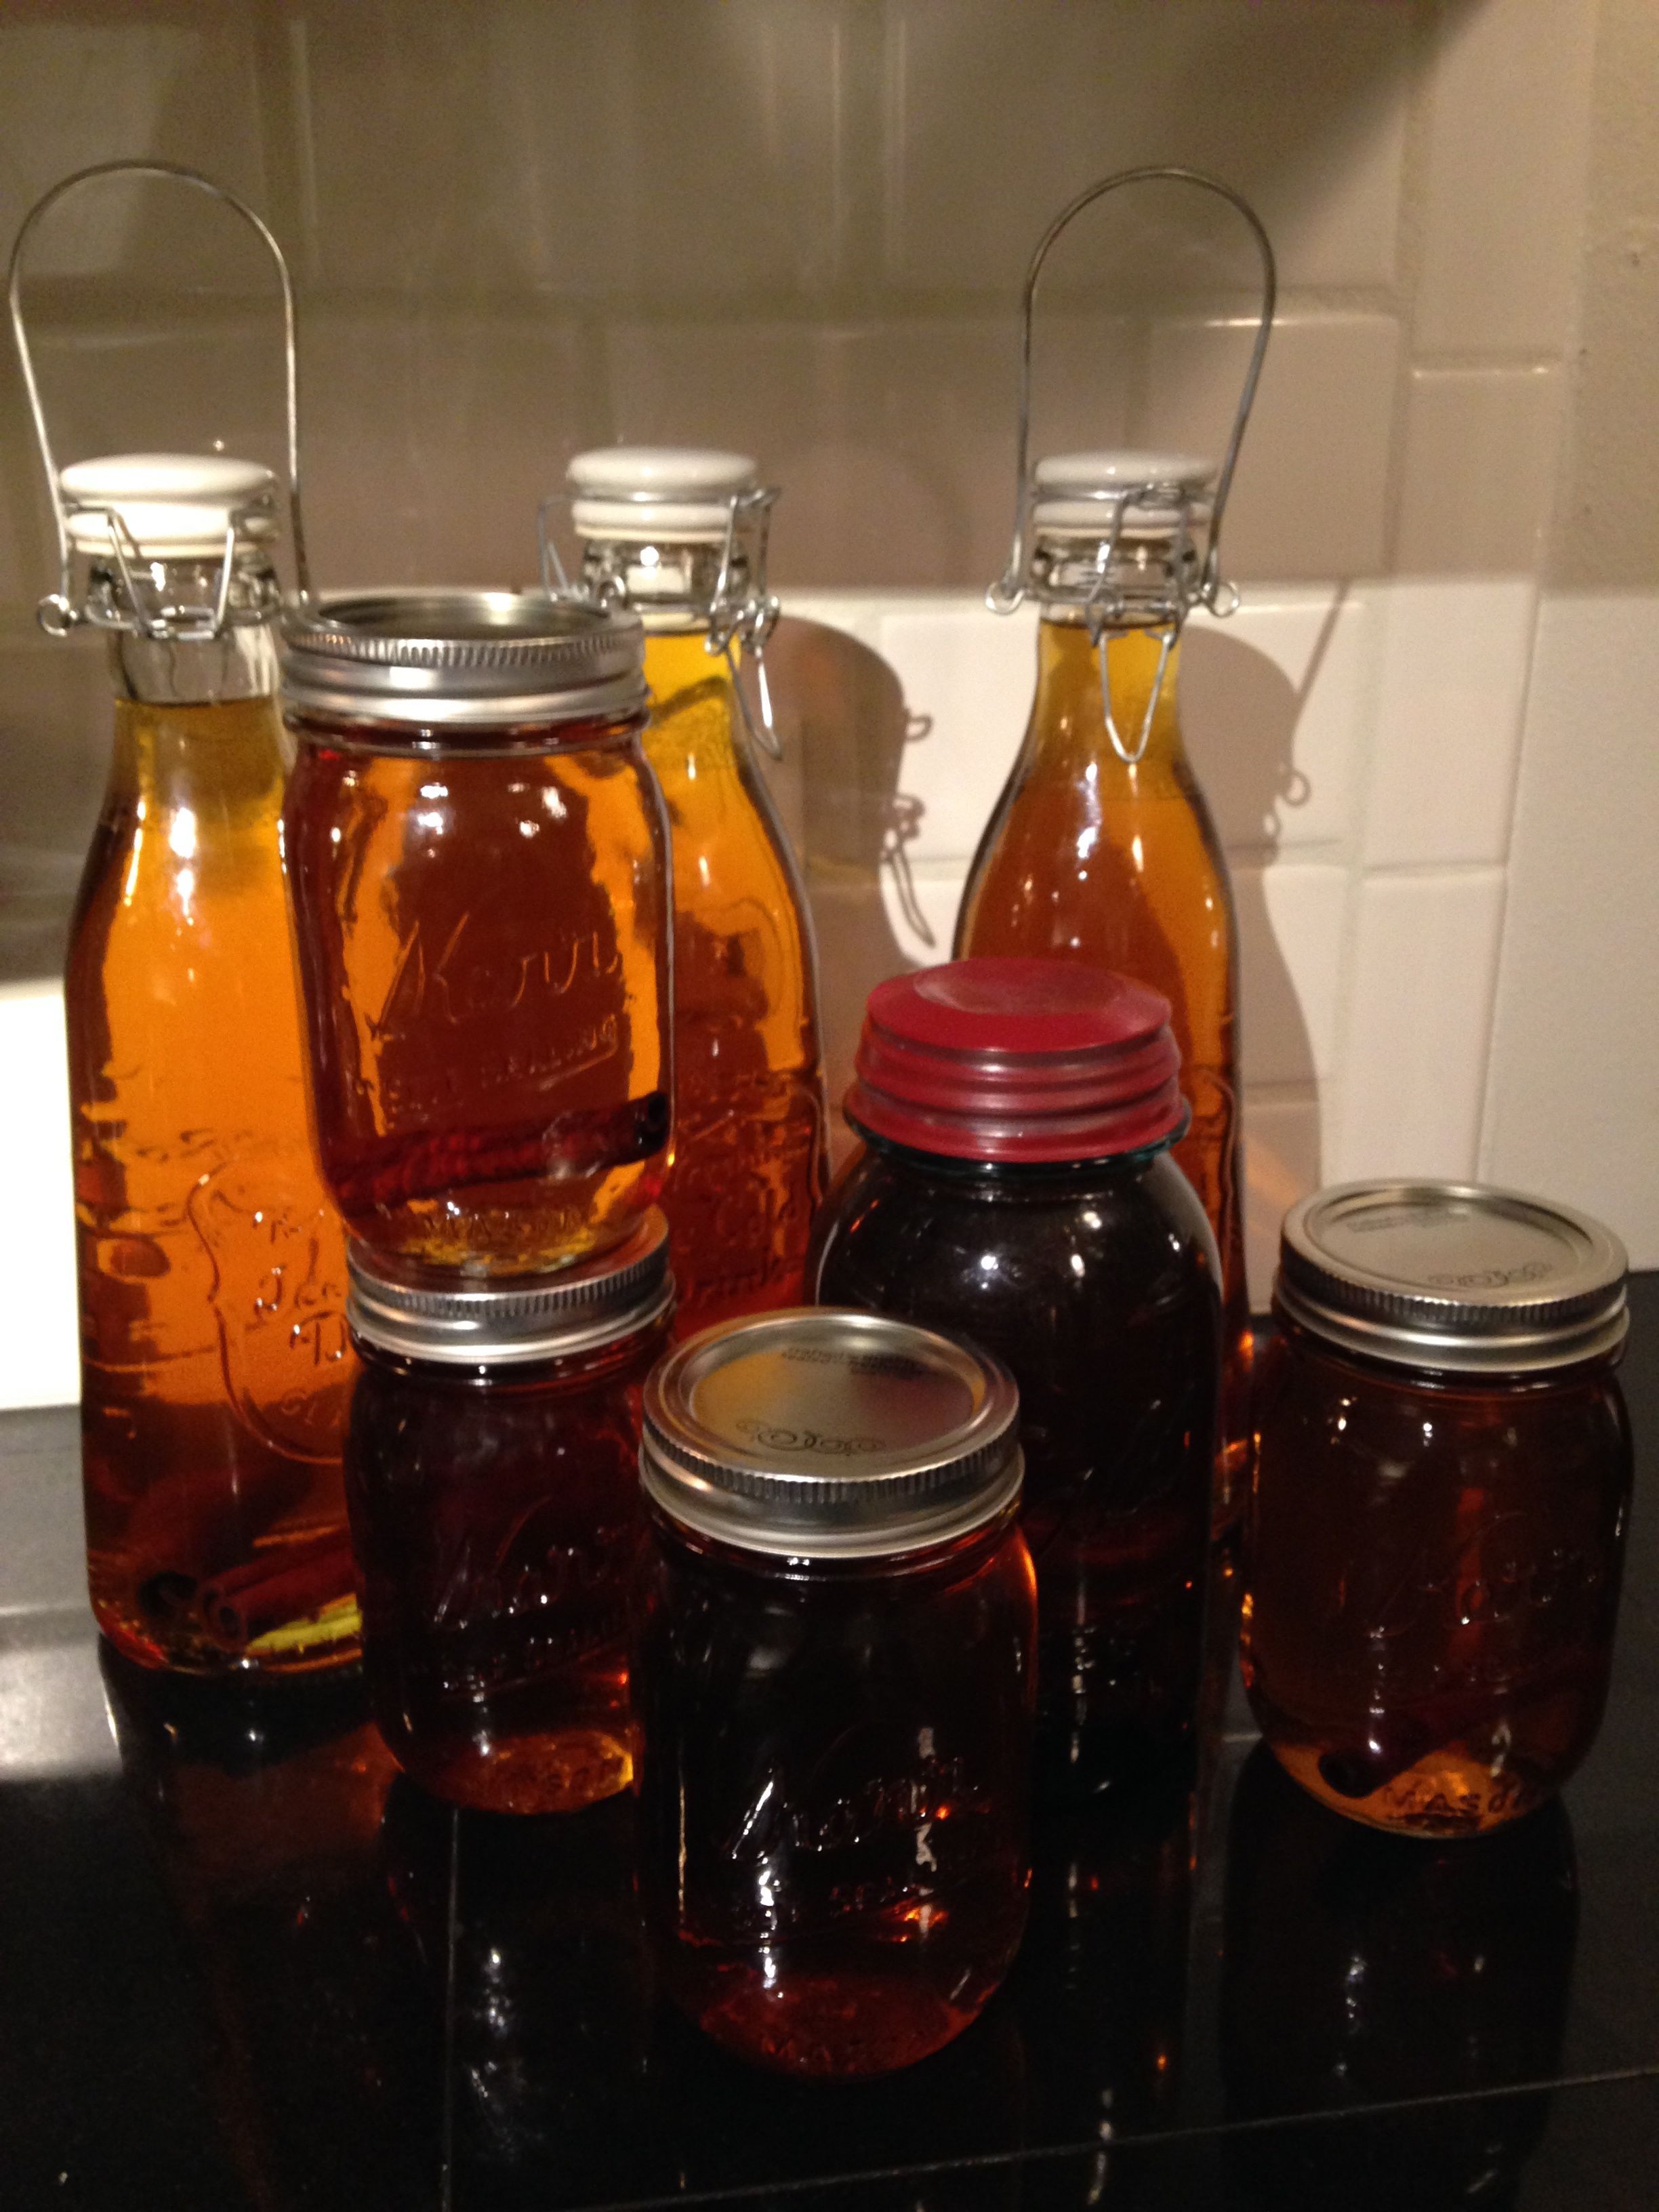 Apple Pie Moonshine Recipe Ings 1 Bottle 750 Ml Of 190 Proof Everclear Or High Vodka If Is Unavailable In Your